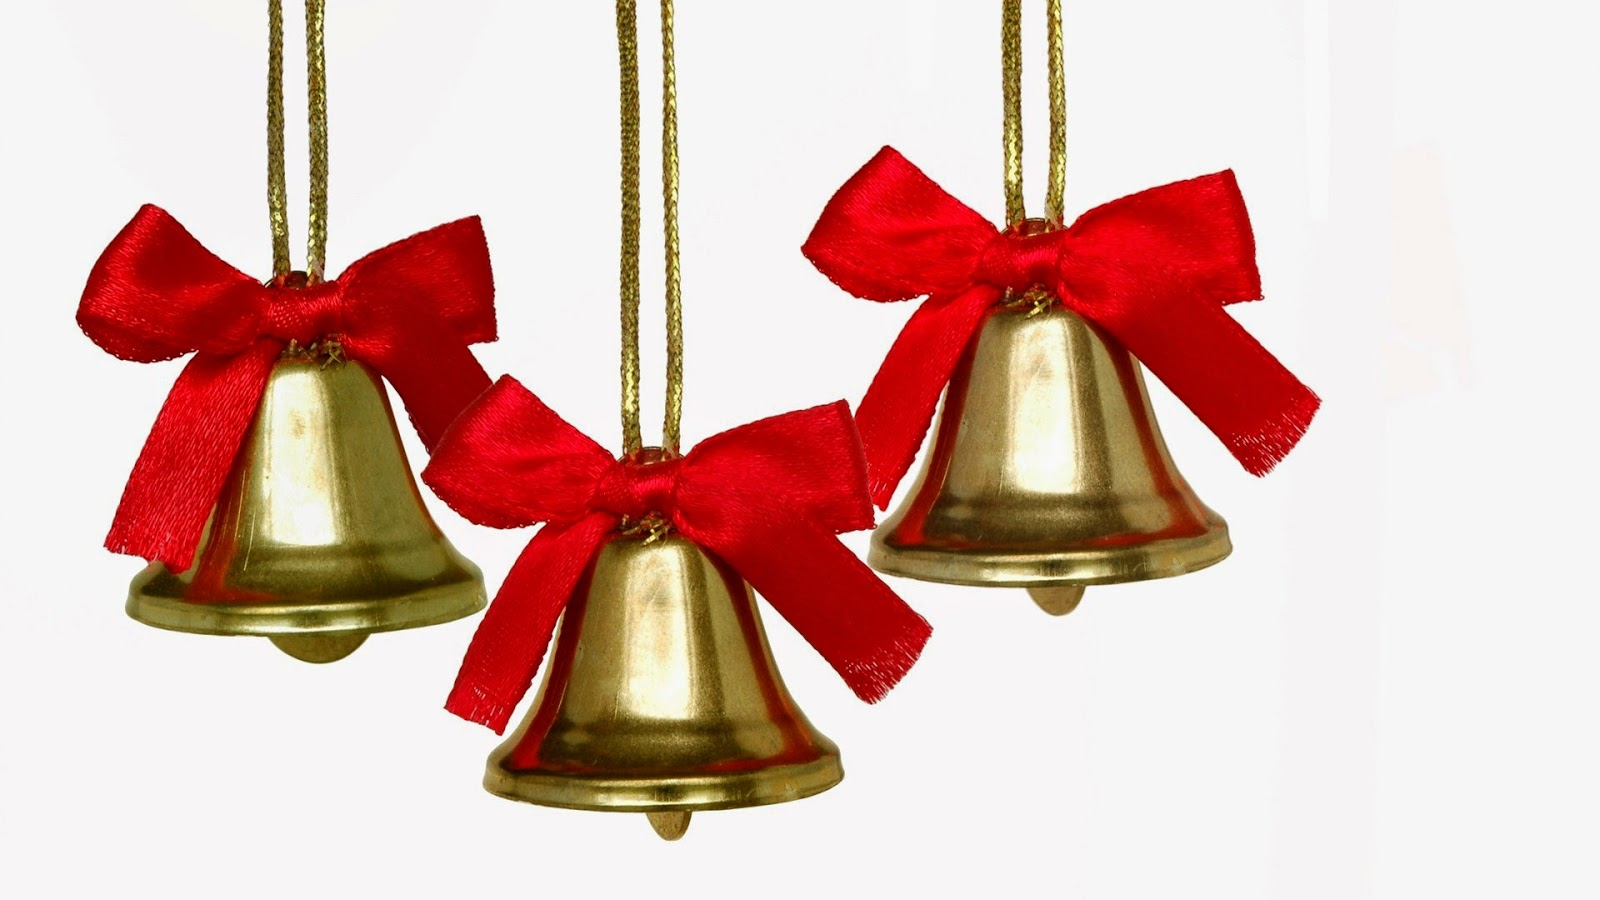 Golden_Christmas-bell-red-ribbon-white-background-Wallpaper_1920x1080.jpg